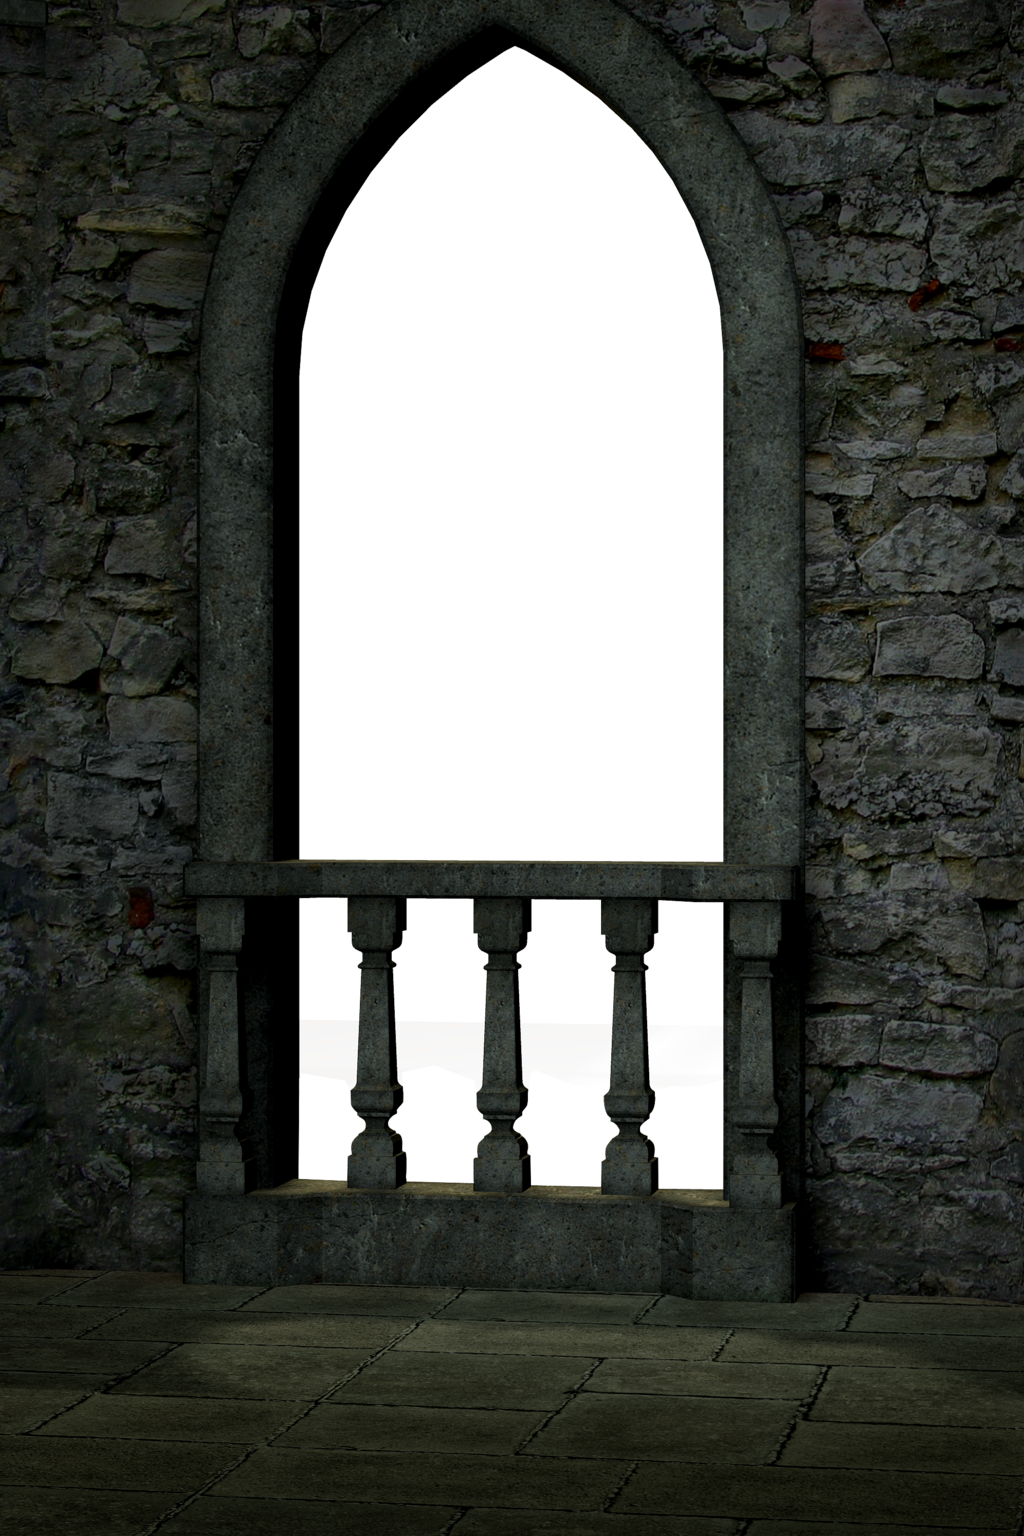 A window with a view of the castle.